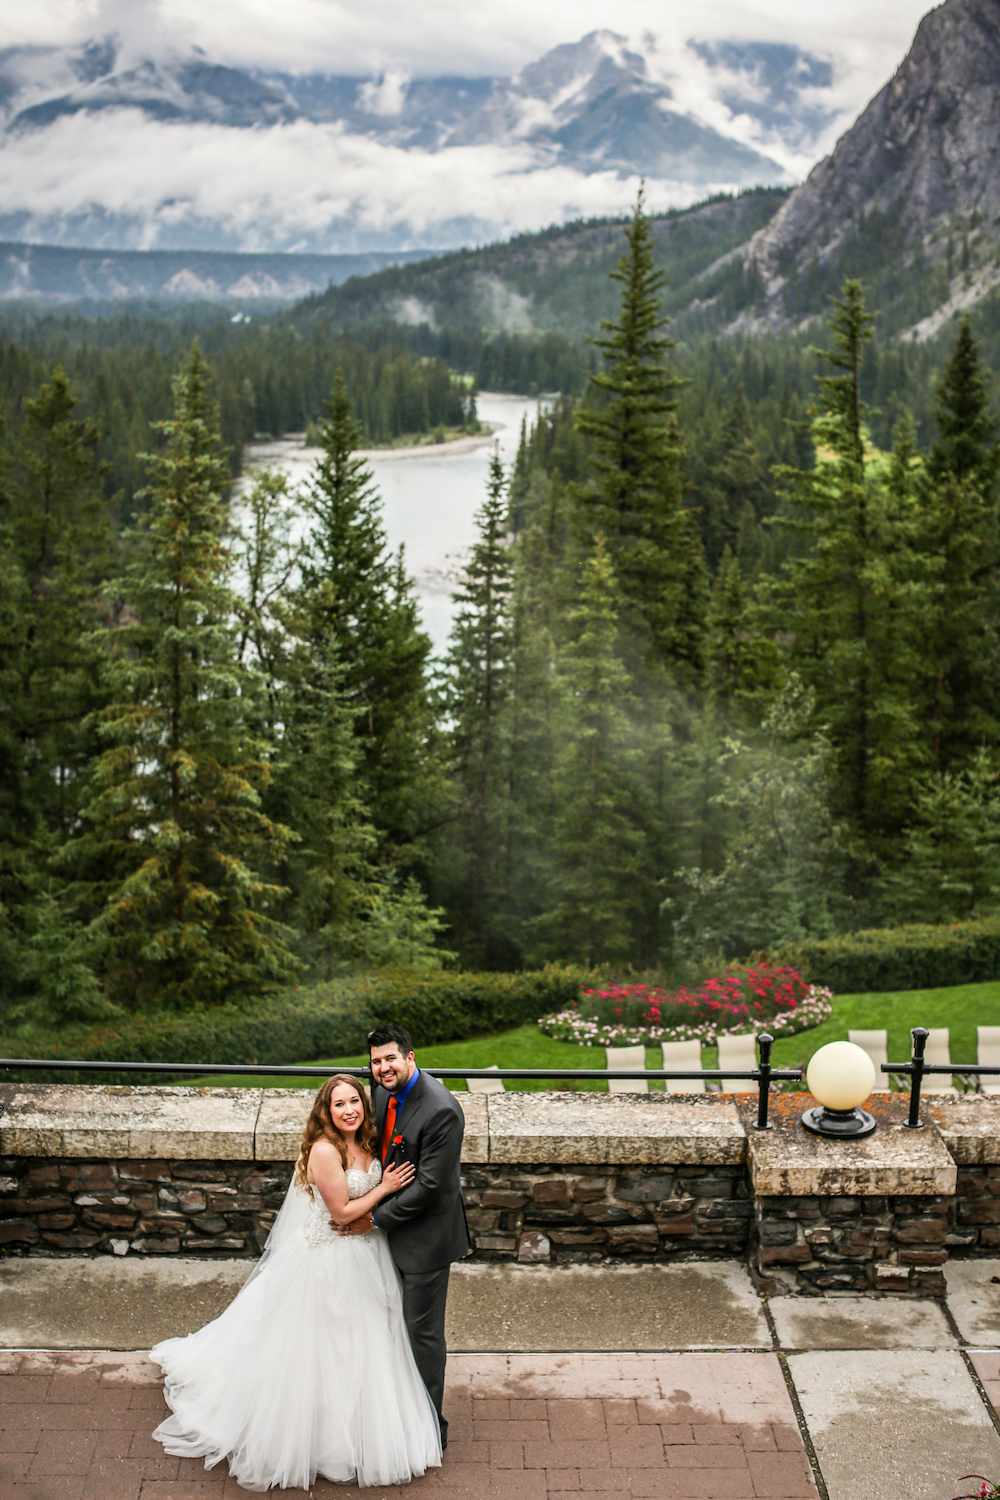 Photo and Top Banner Photo by Just Married Photography @justmarriedphotography